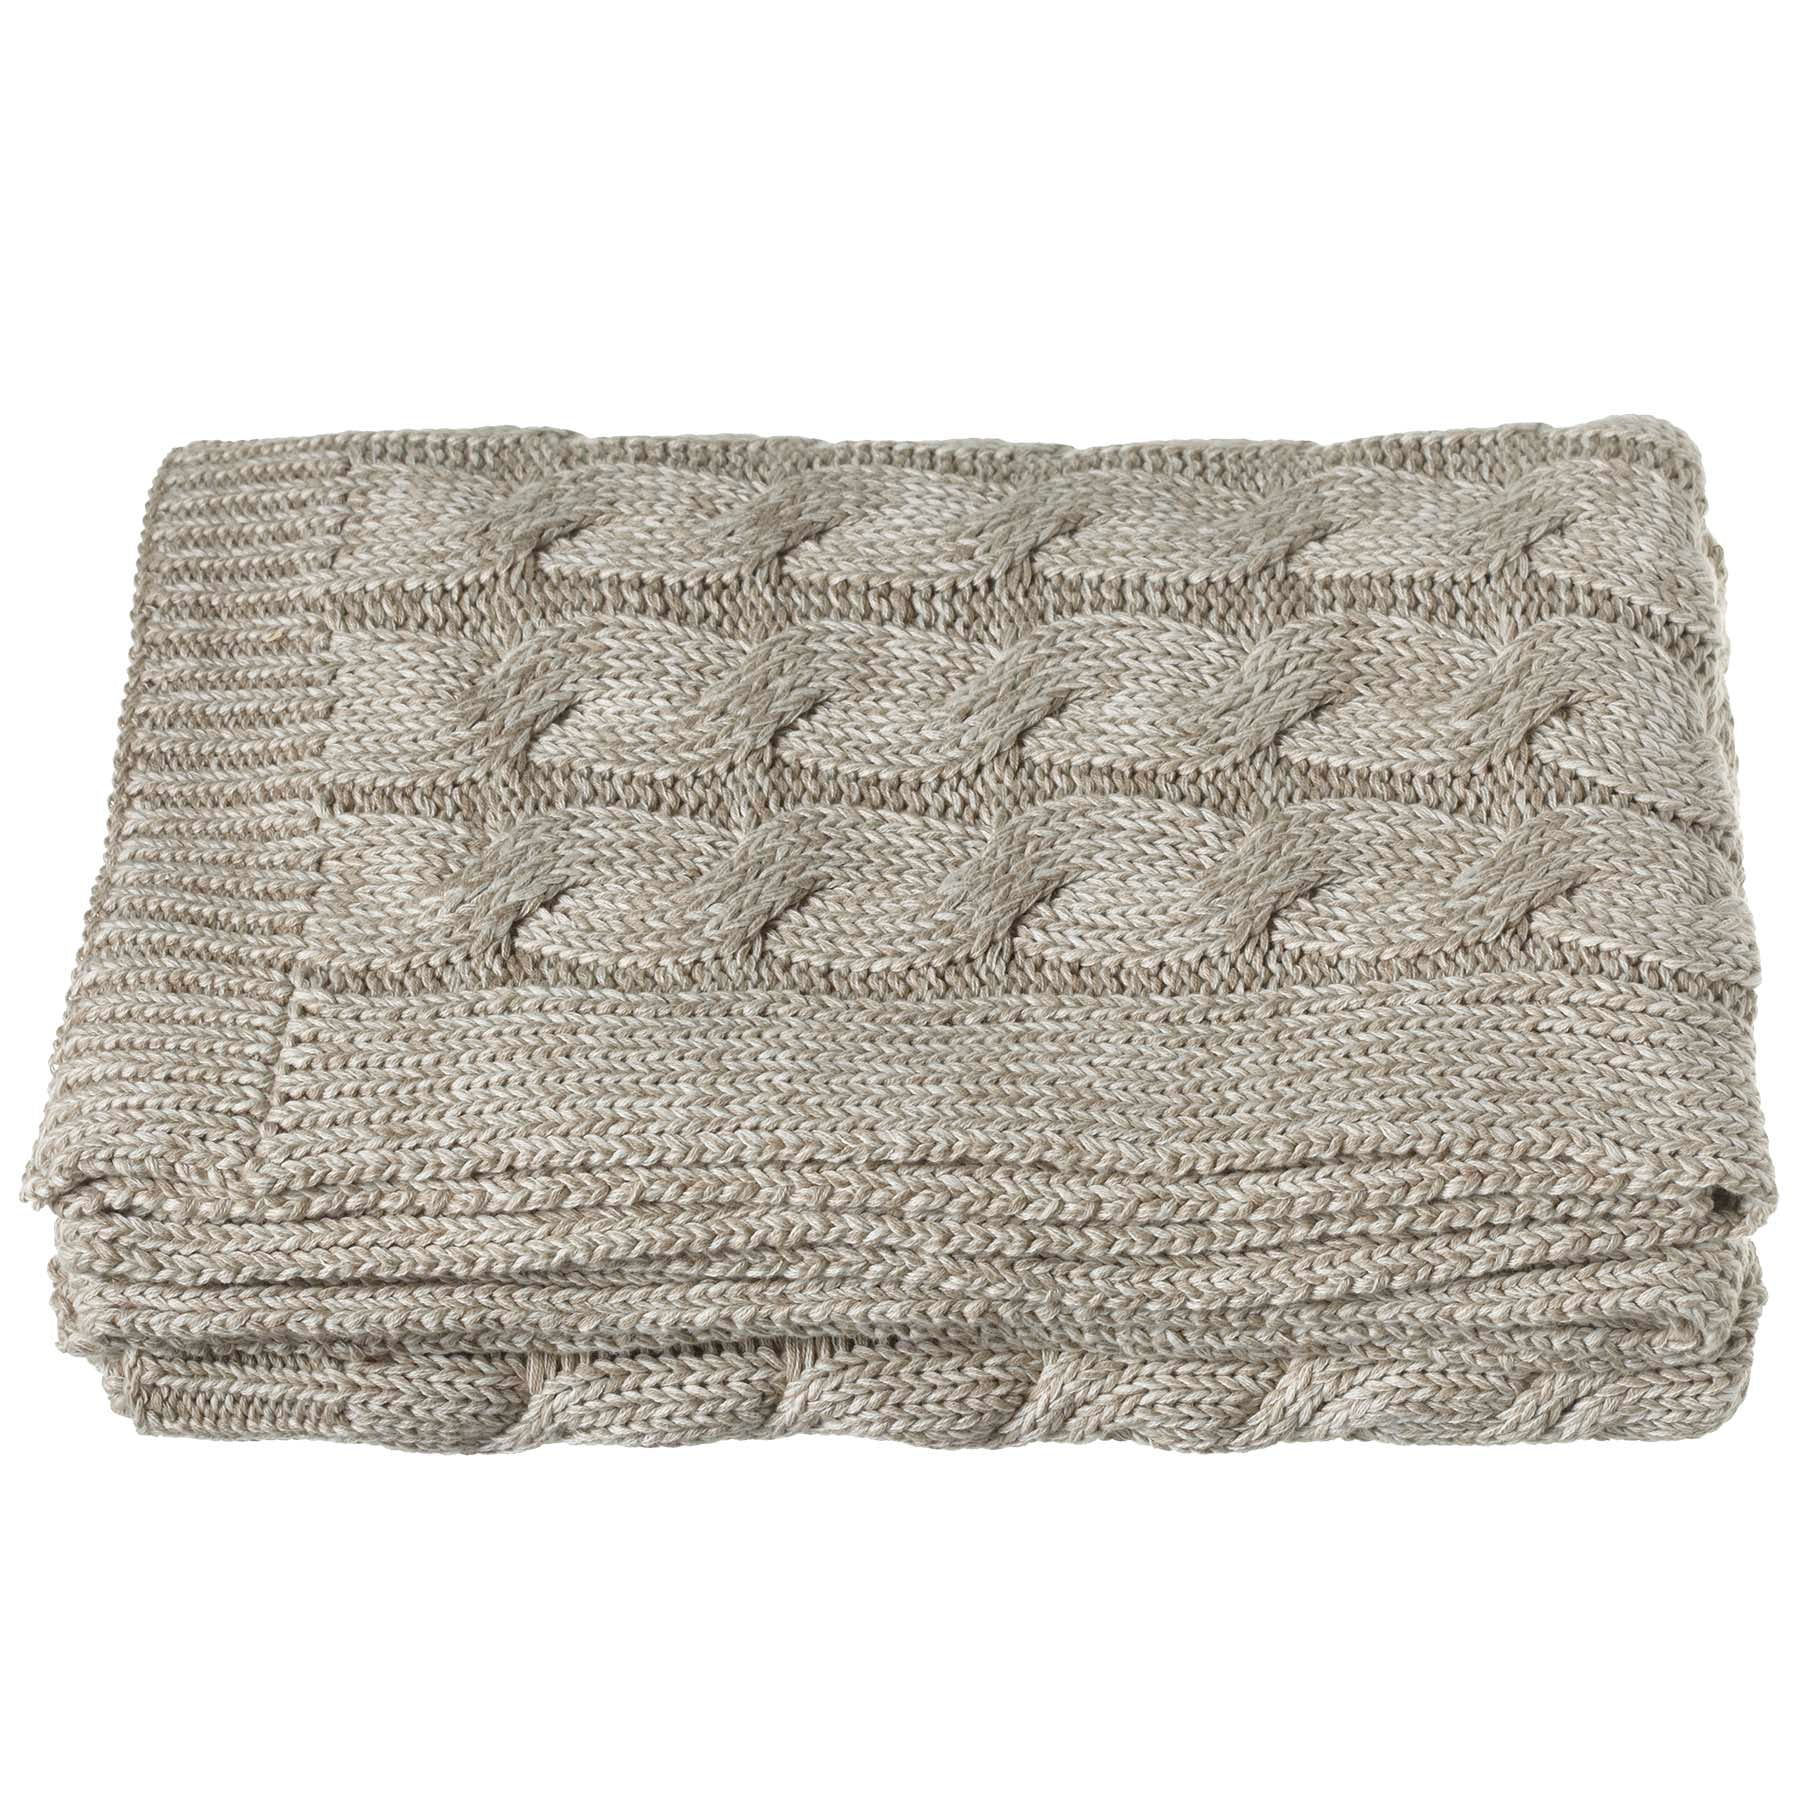 Chunky Tan Cable Knit Throw